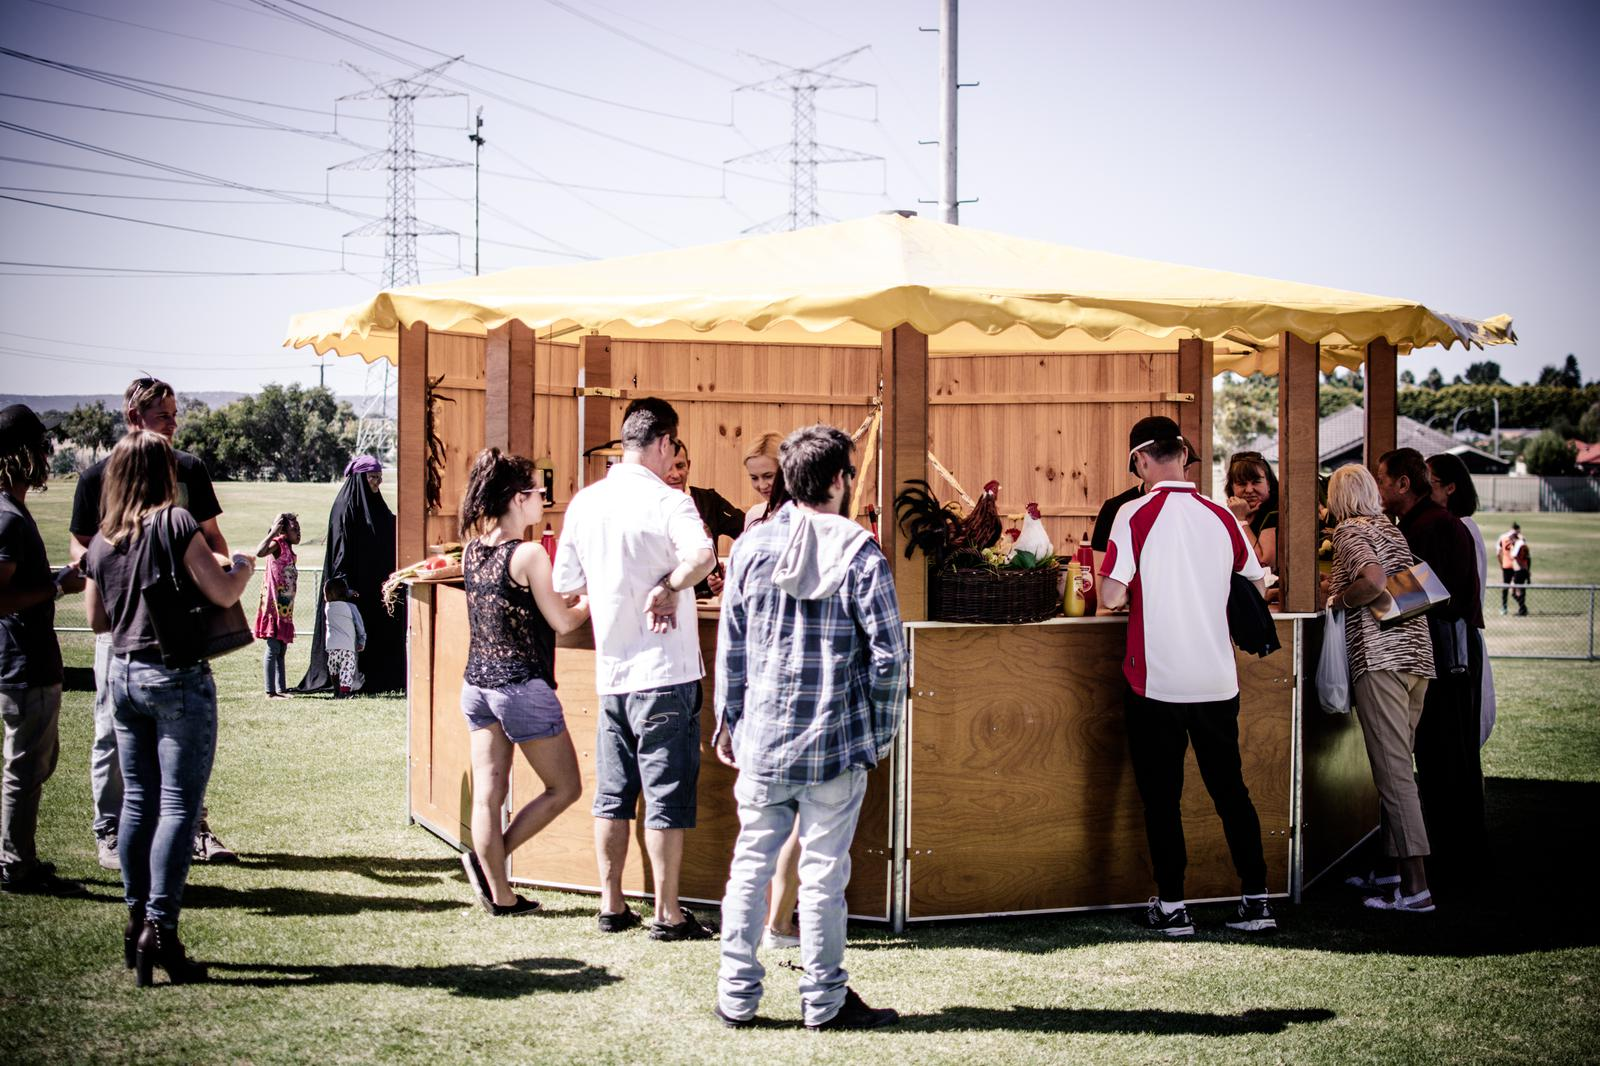 FOOD STAND WITH A DIFFERENCE!